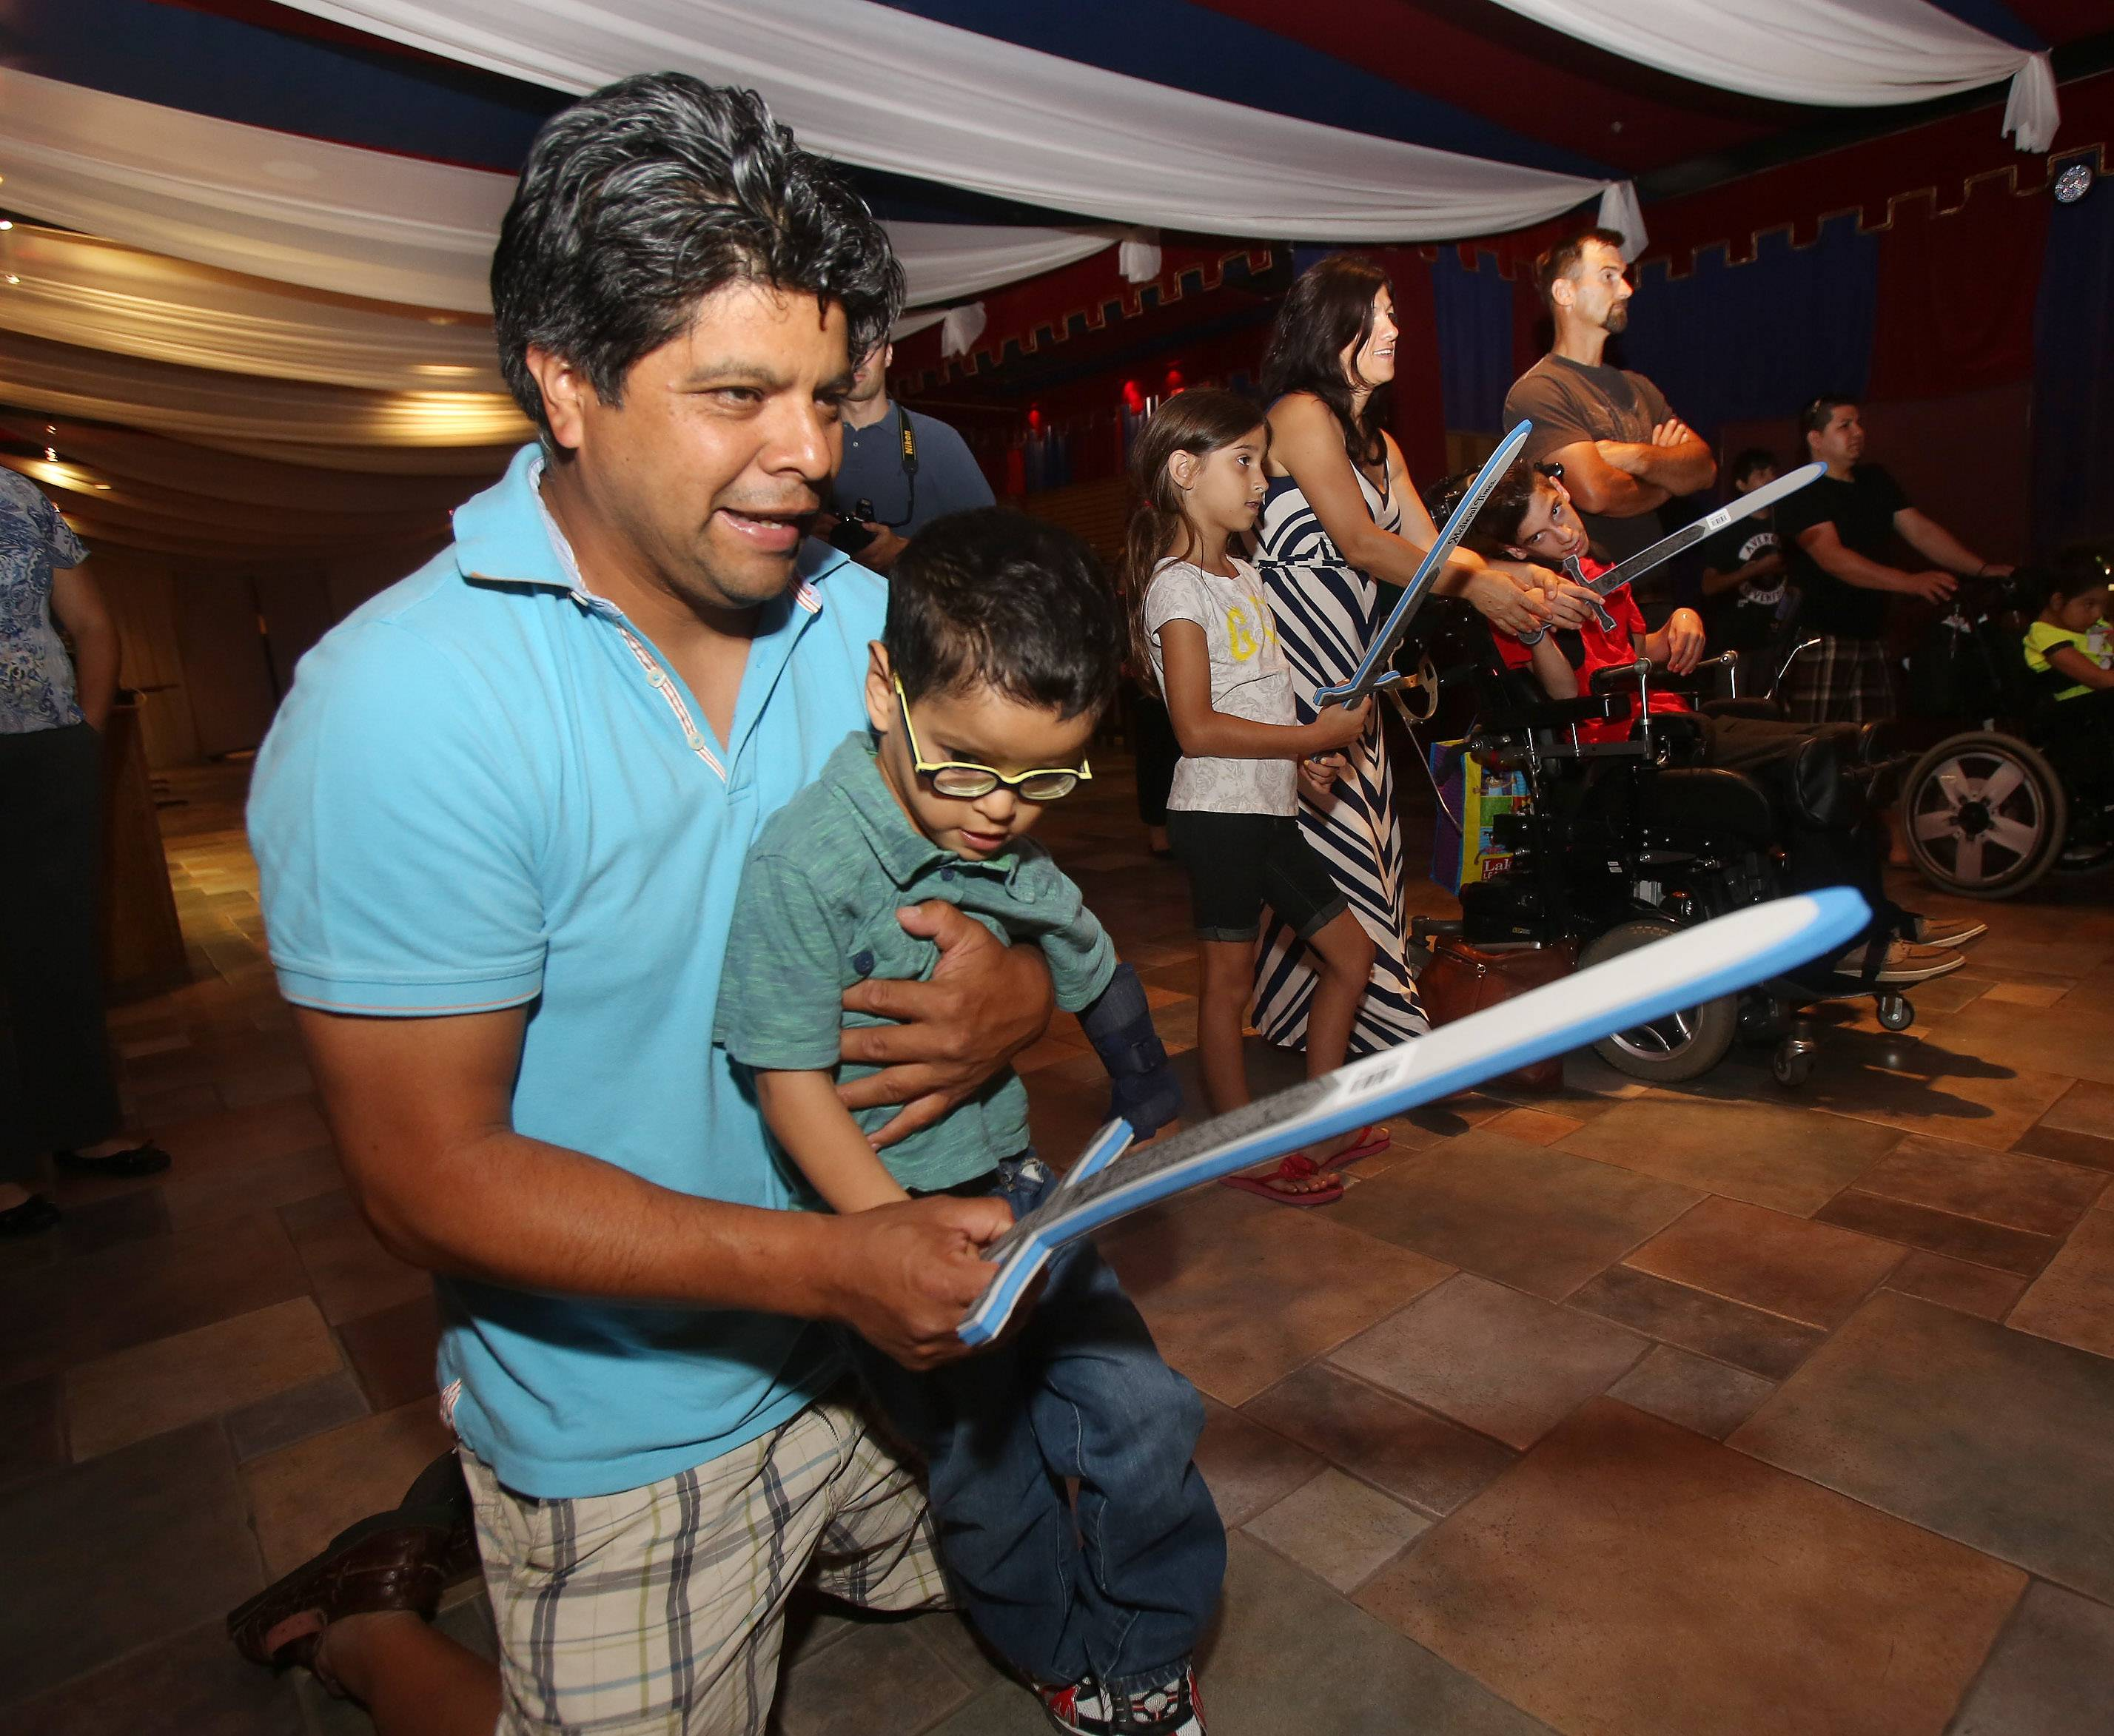 Temoc Aguilar of Chicago holds his son, Felipe, 5, while they practice with a sword as the group Variety Children's Charity teamed with Medieval Times in Schaumburg on Sunday to offer knight training to children with special needs.